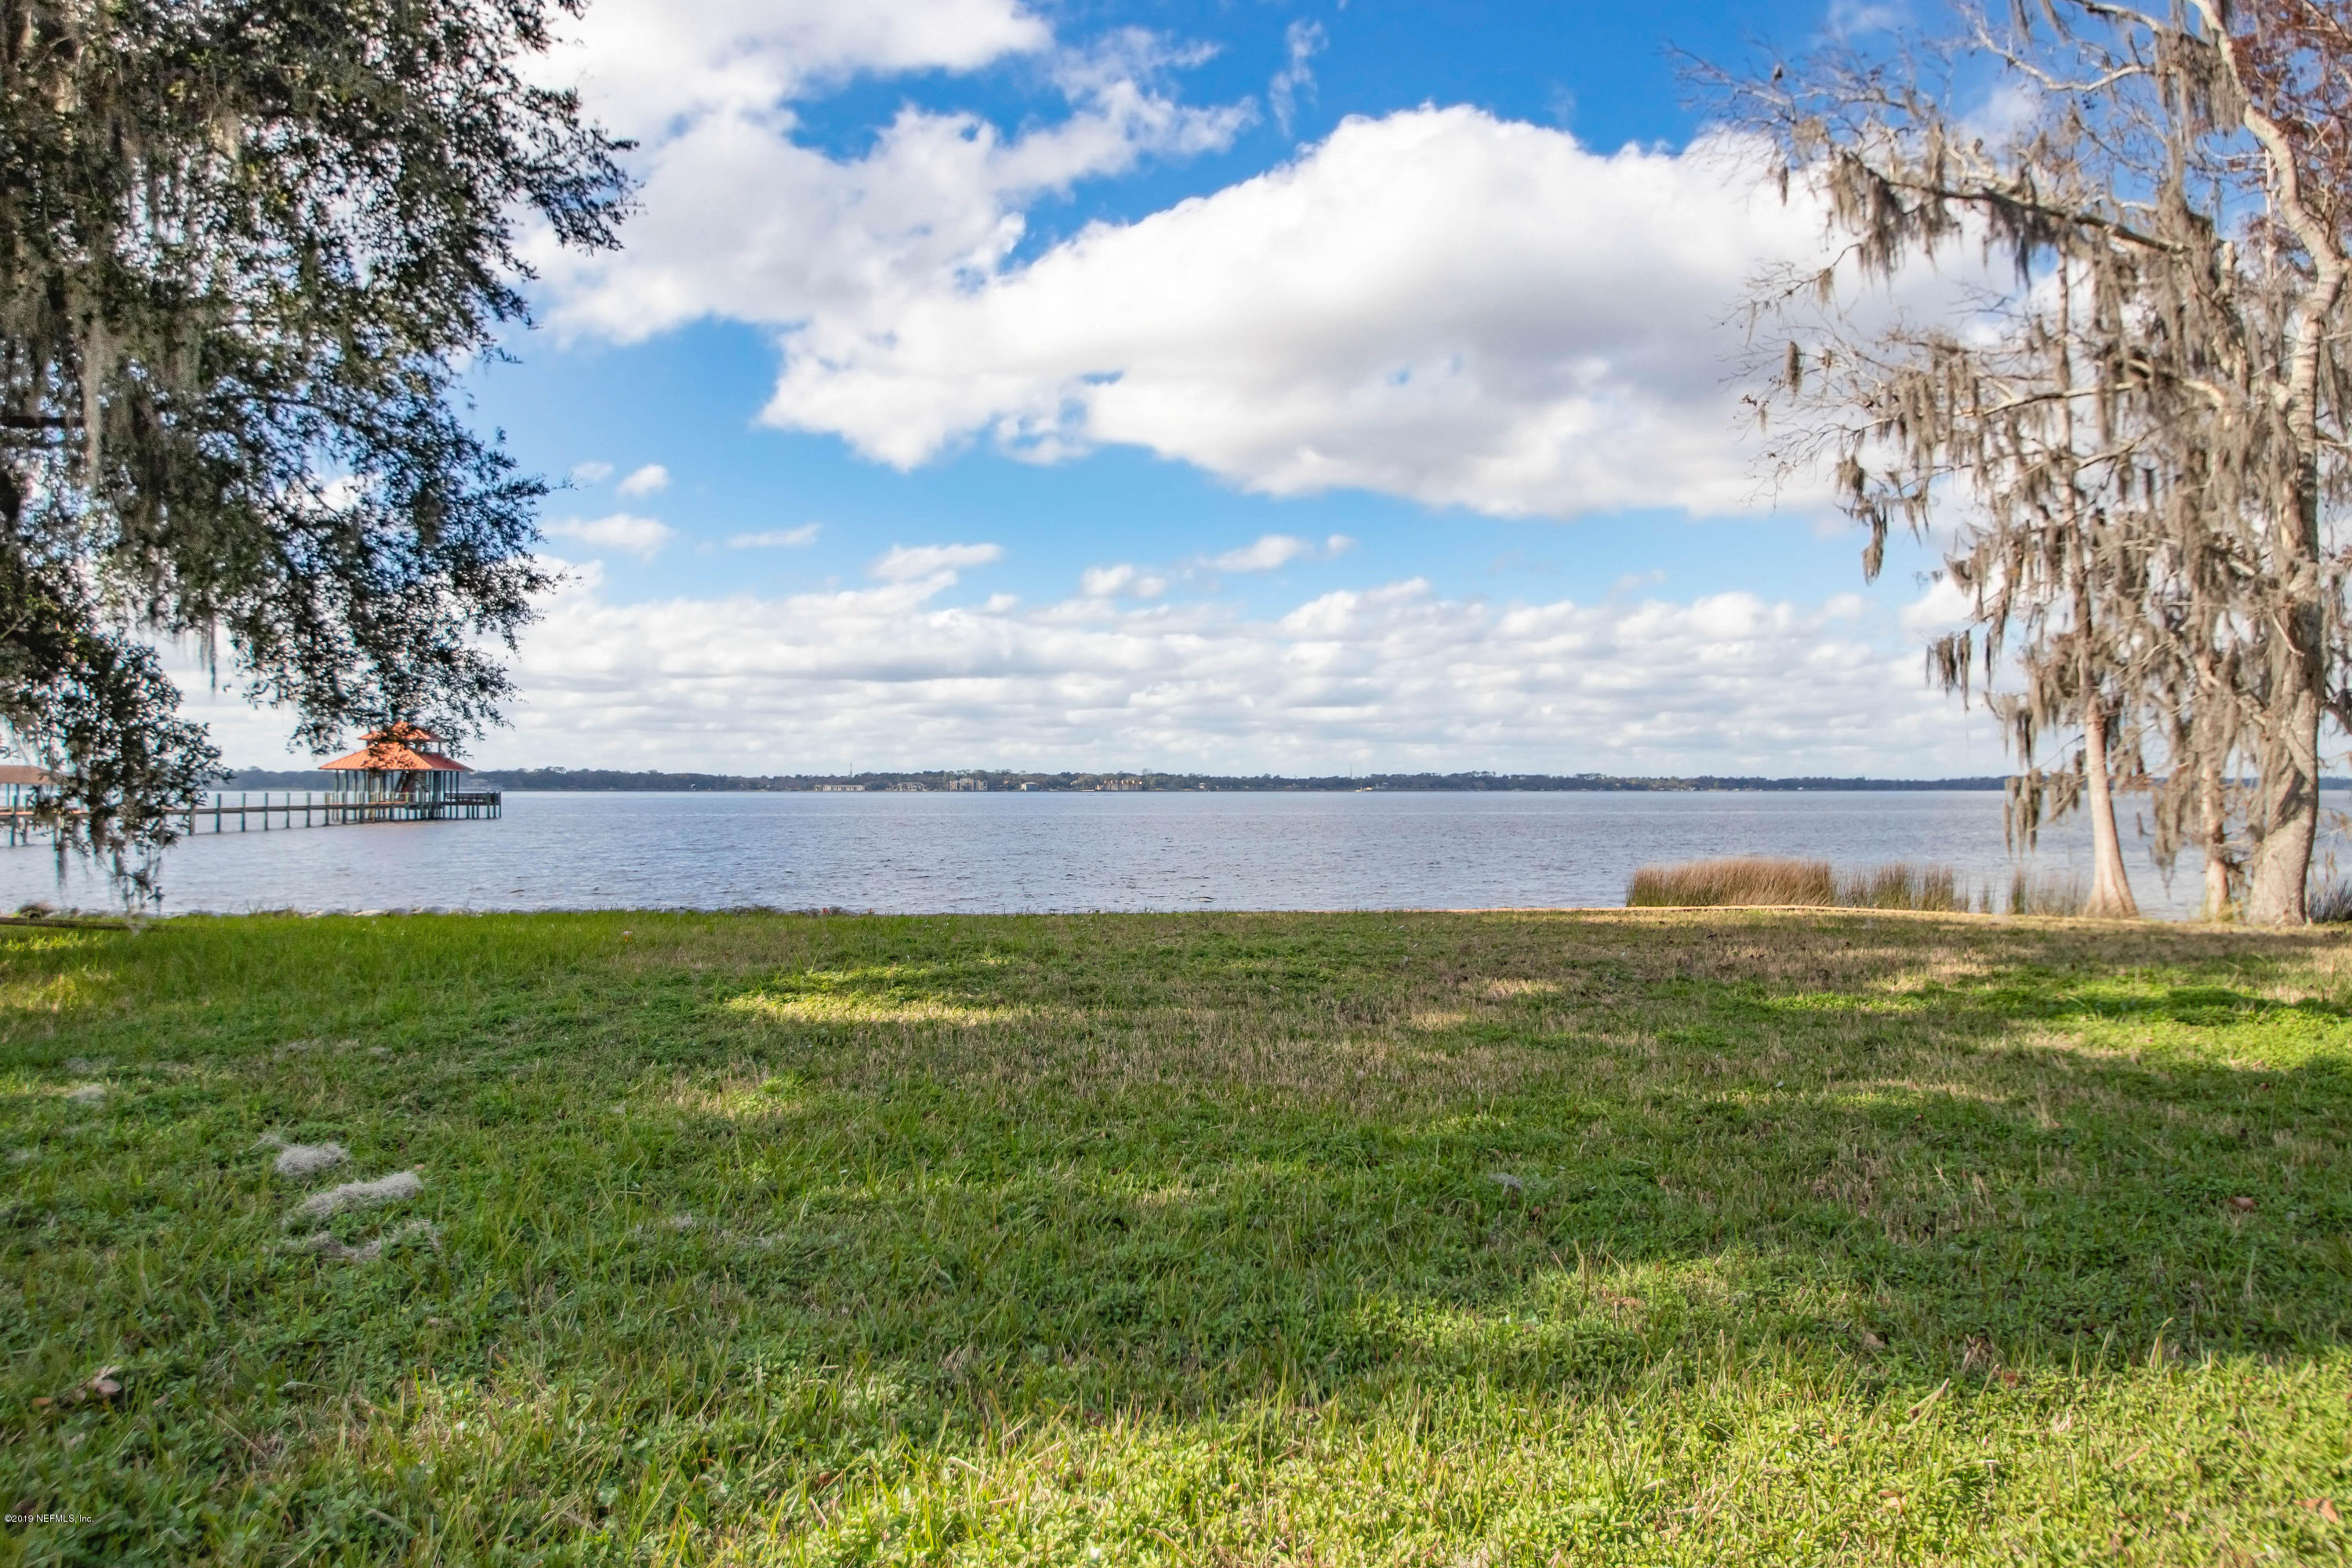 0000 RIVERPLACE, JACKSONVILLE, FLORIDA 32223, ,Vacant land,For sale,RIVERPLACE,972572